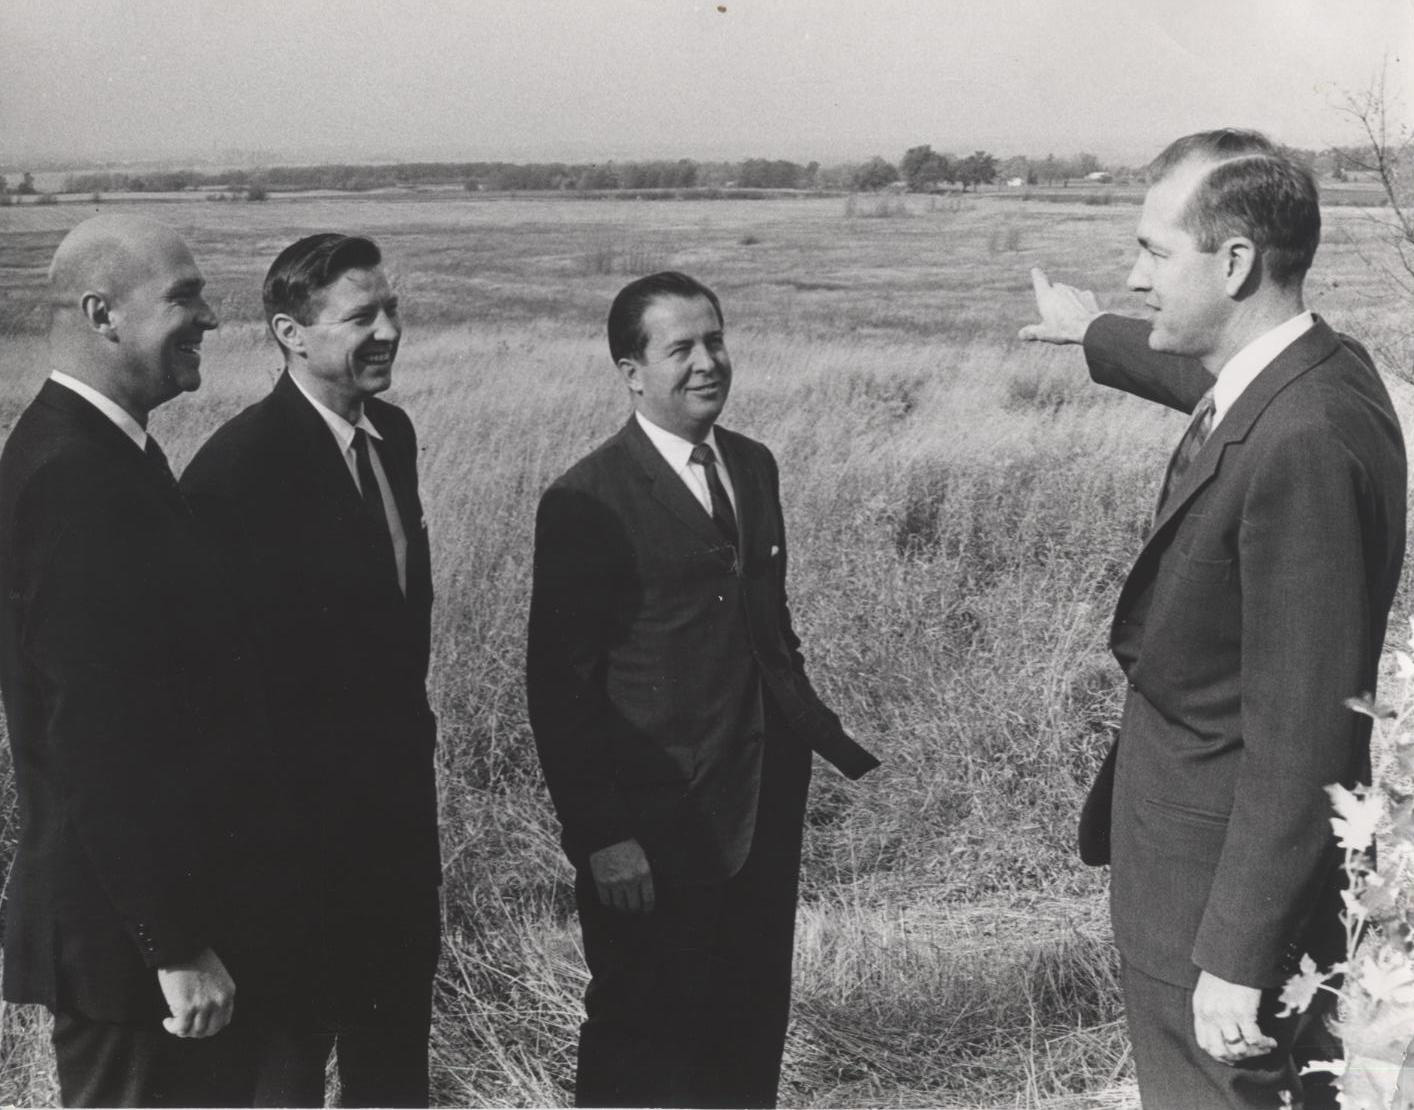 Campus site tour, September 1967 (L-R) Robert Maier, Raymond D. Vlasin, Russell White, Edward Weidner